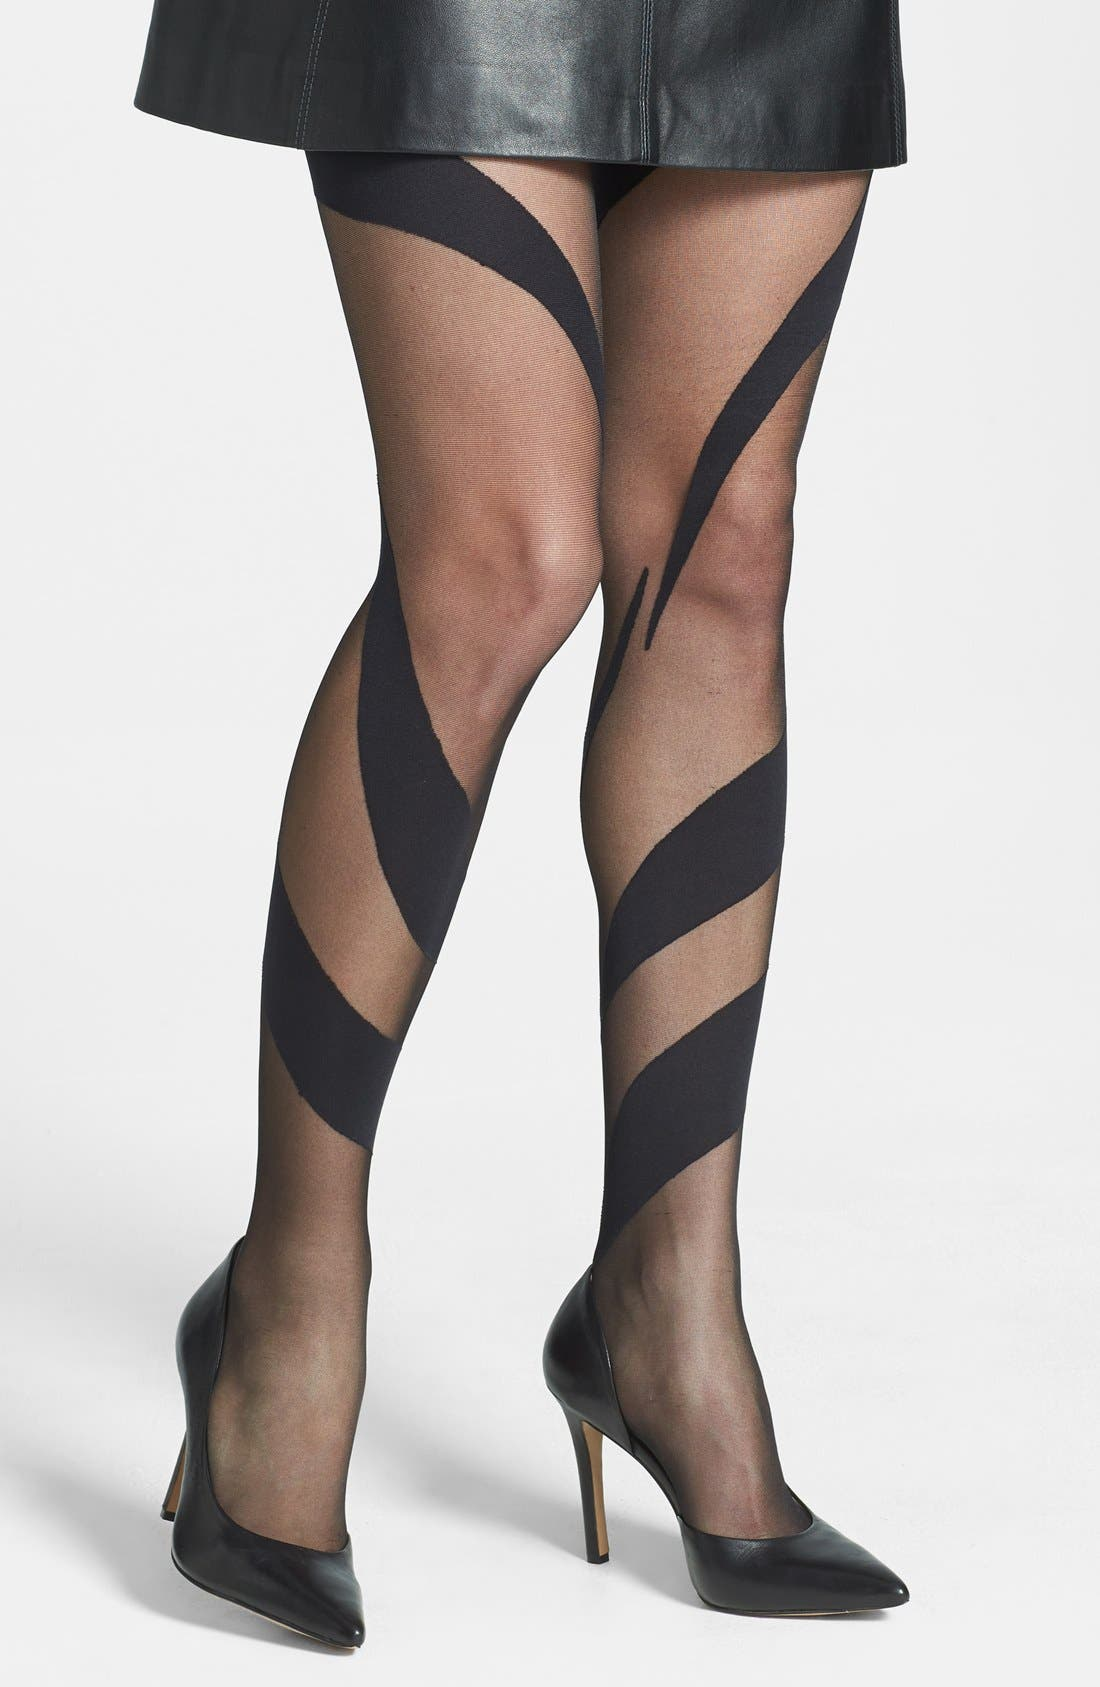 Main Image - Oroblu 'Kimberly' Tights